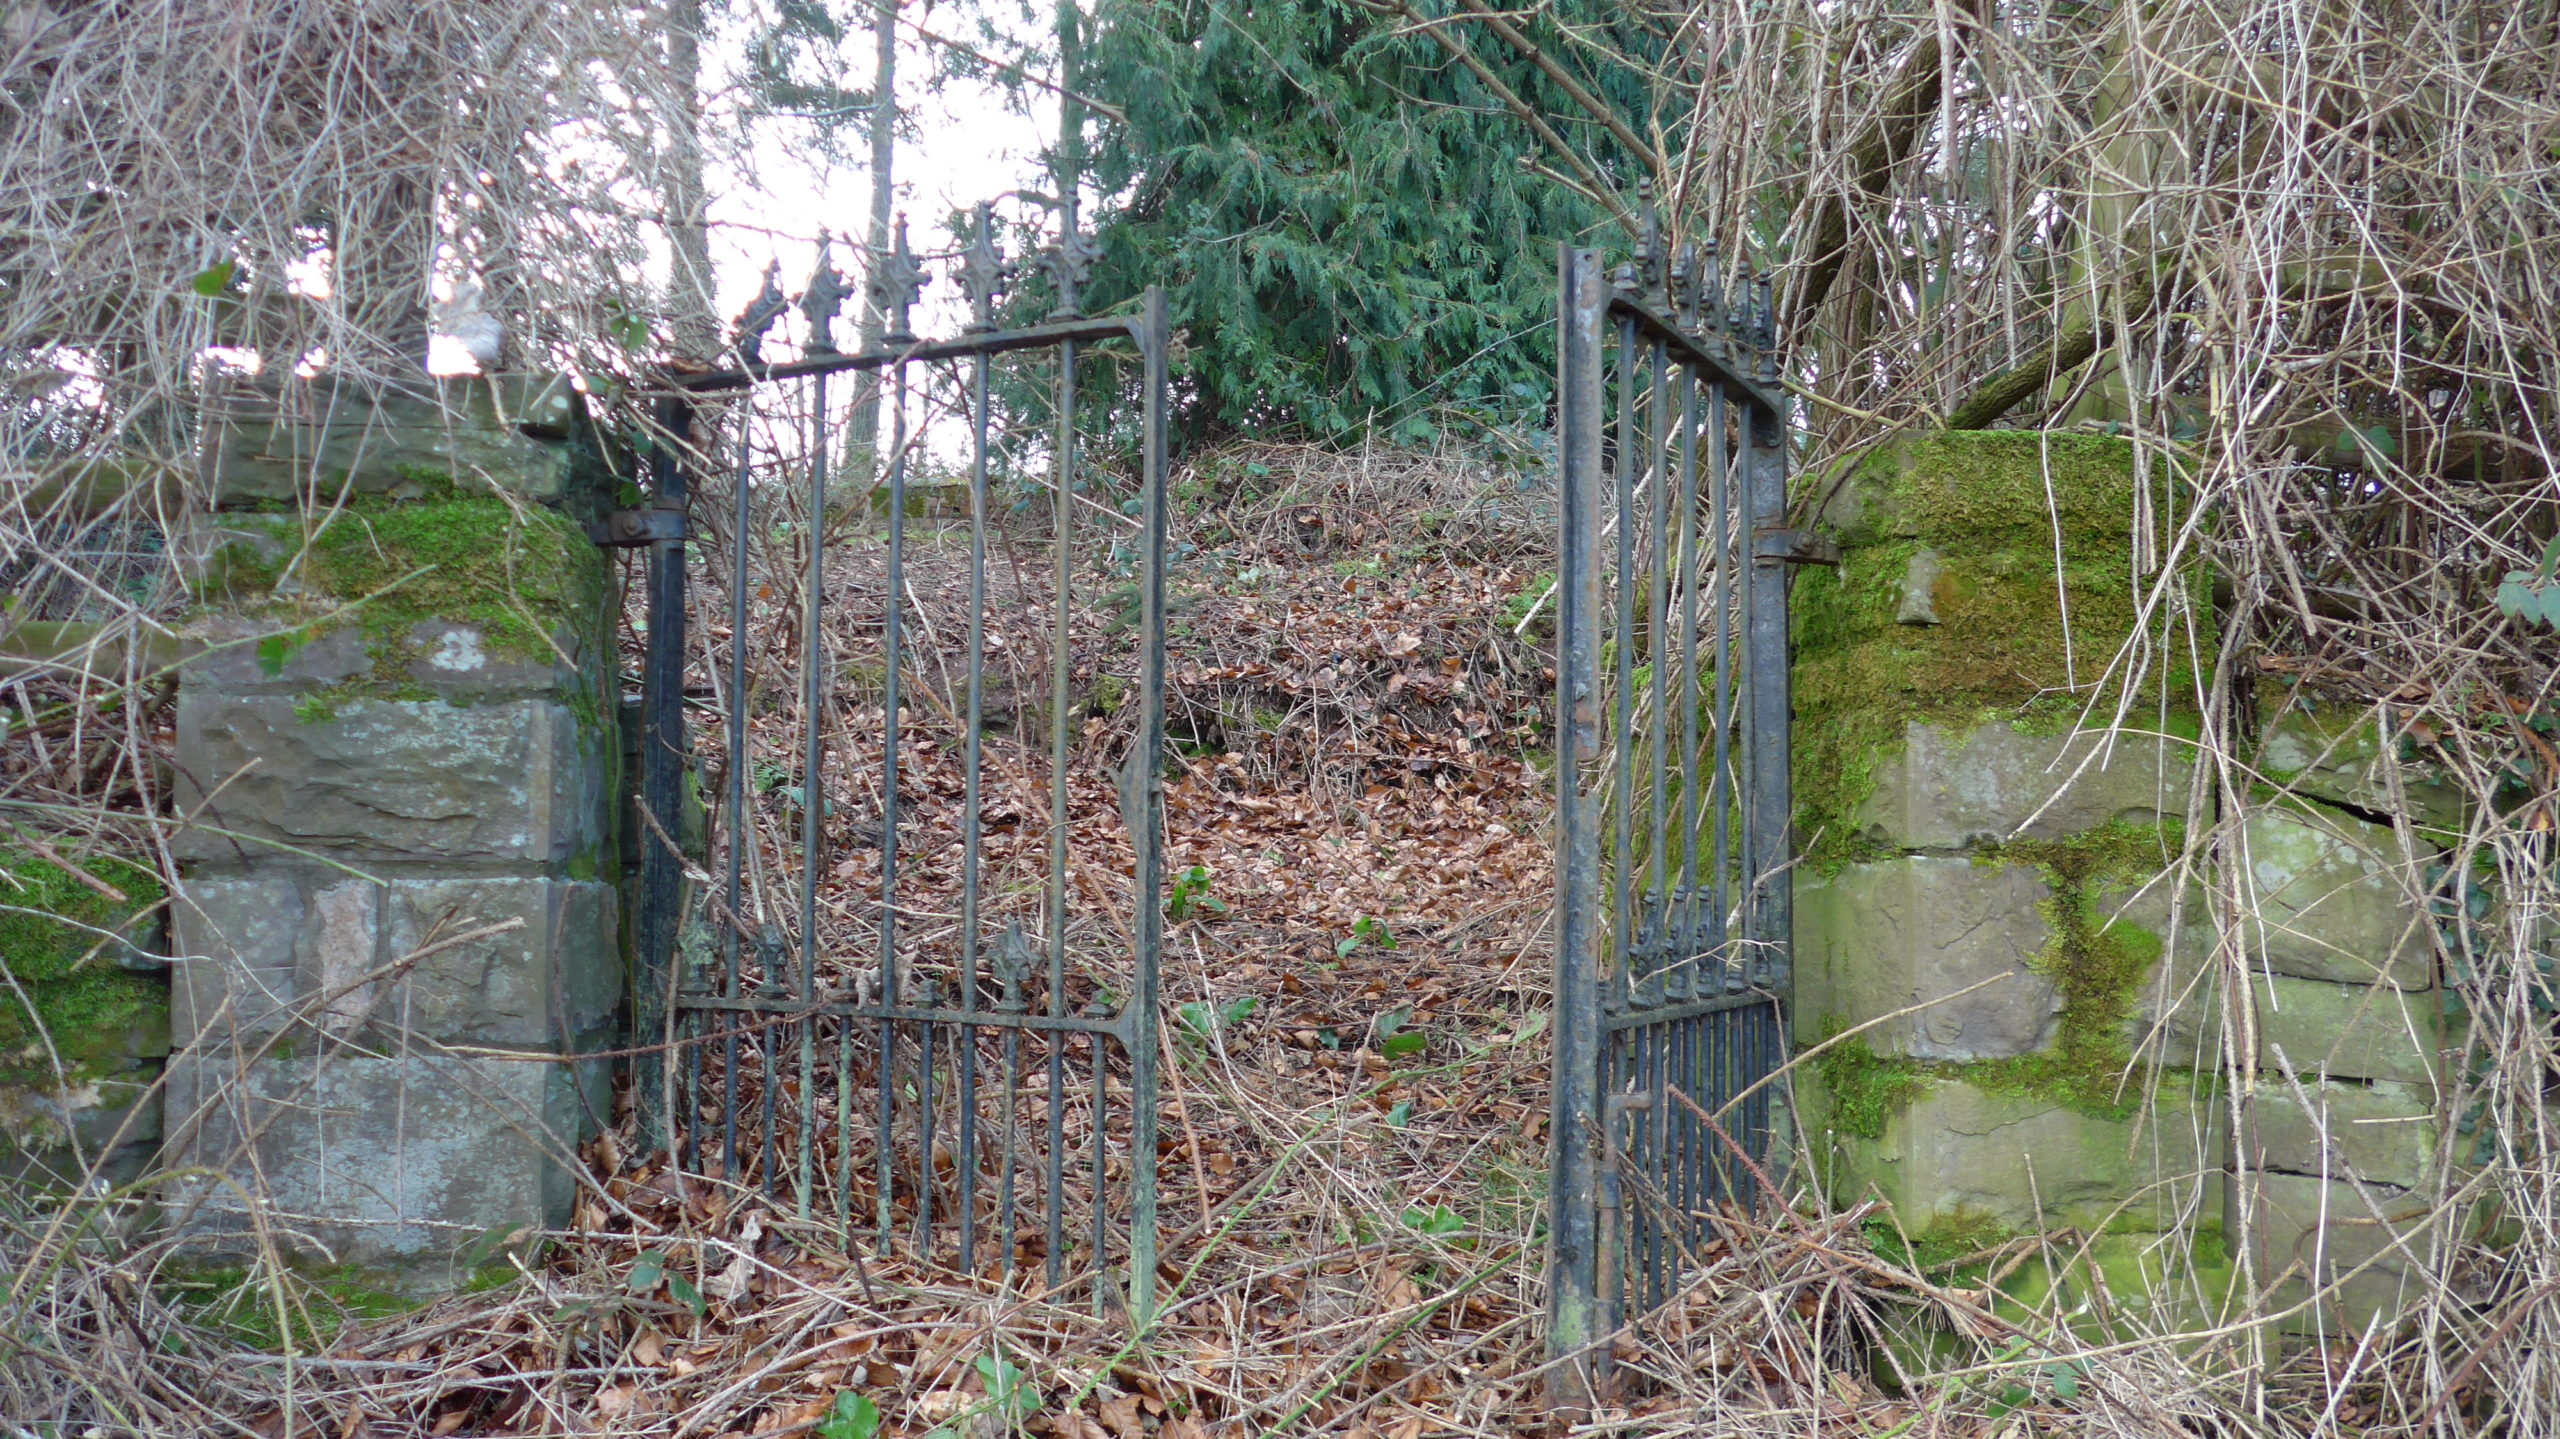 The only remnants of the Iron Church